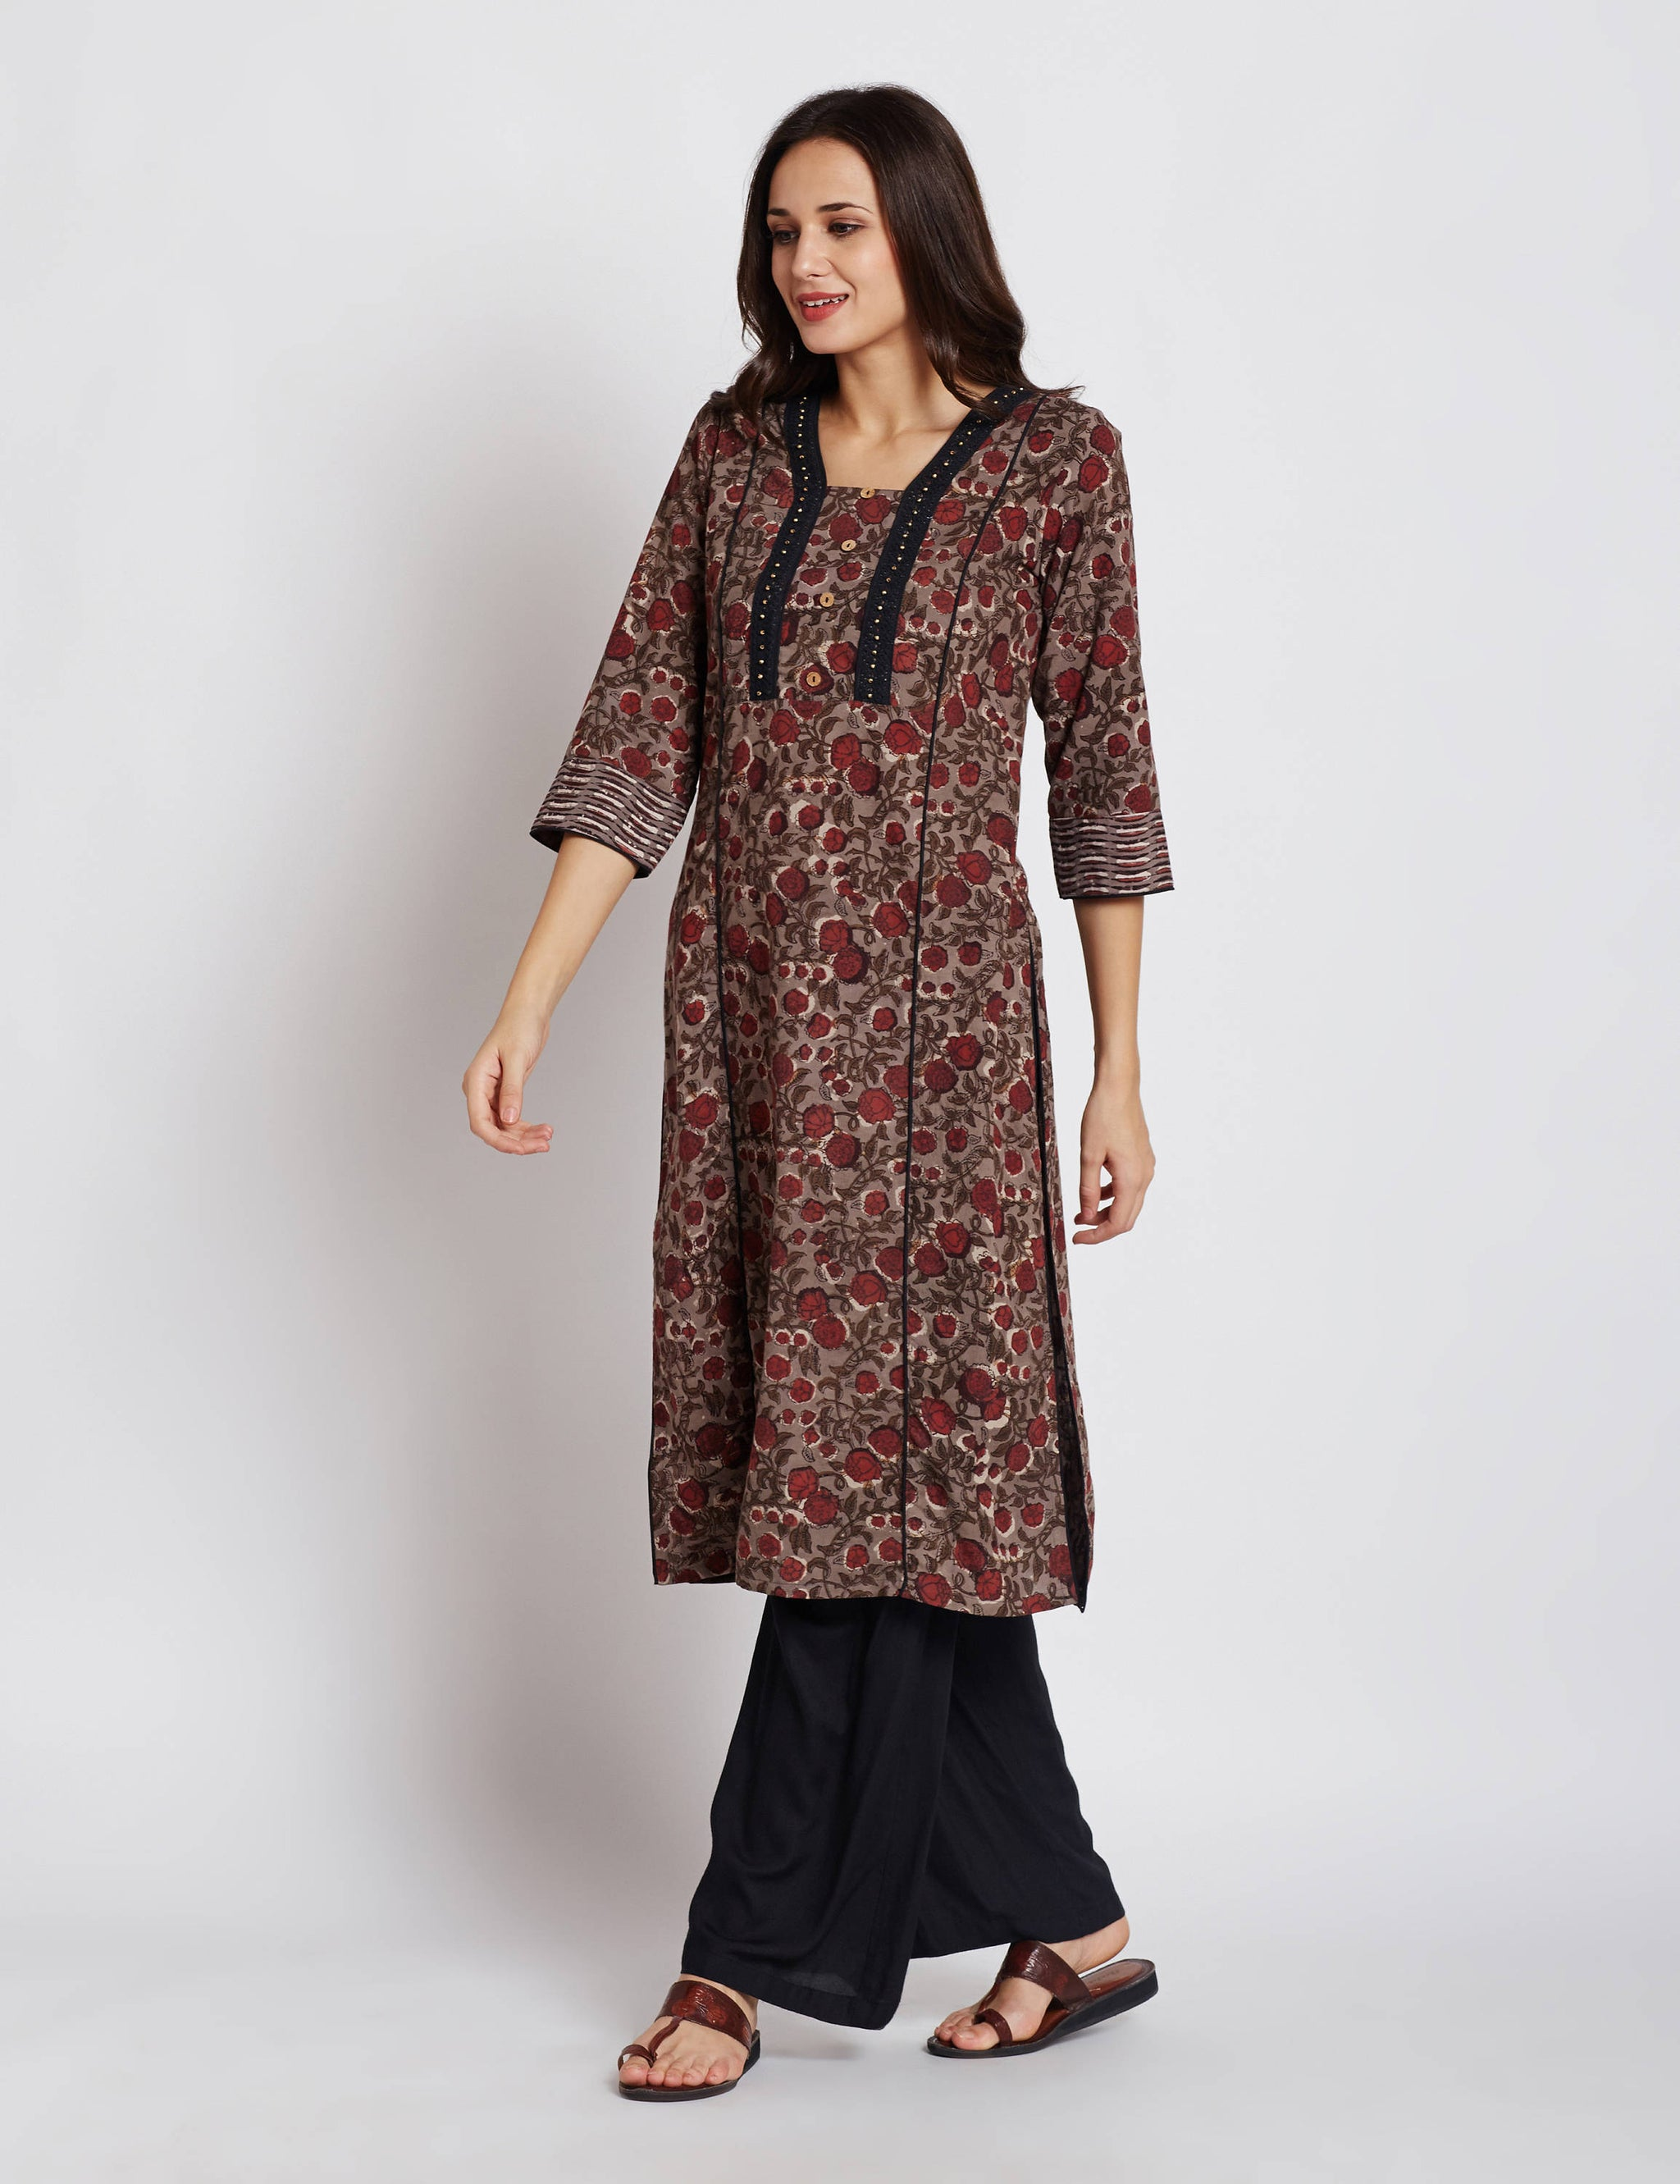 Hand block dabu printed ethnic long Indian kurta with trims on front and neck design with beads & lace